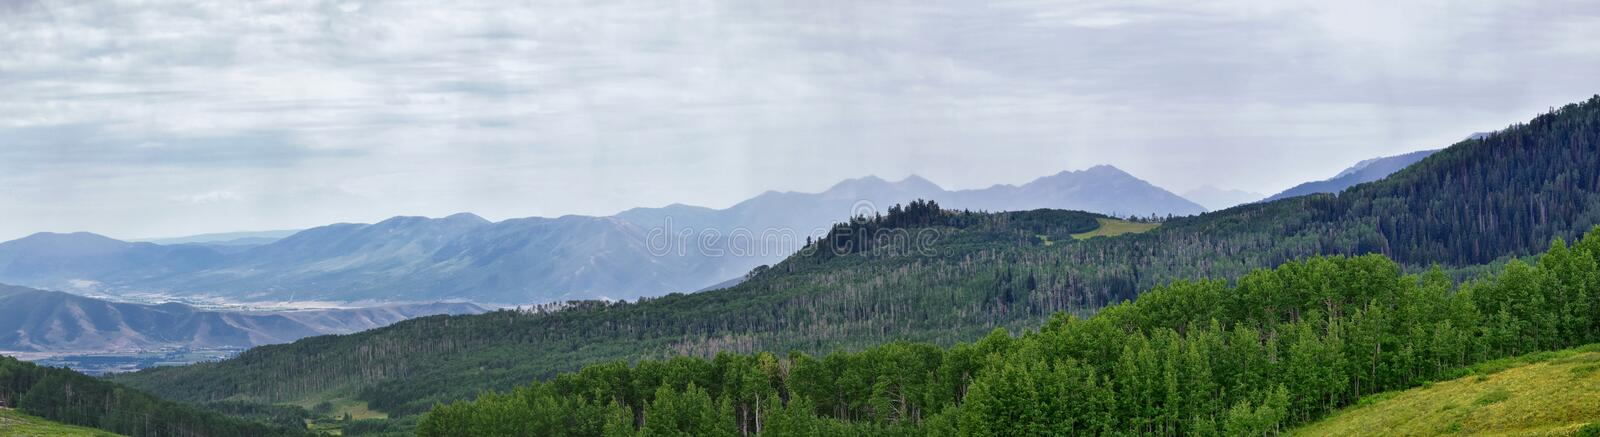 Guardsman Pass views of Panoramic Landscape of the Pass, Midway and Heber Valley along the Wasatch Front Rocky Mountains, Summer F. Orests, Clouds and Rainstorm stock images